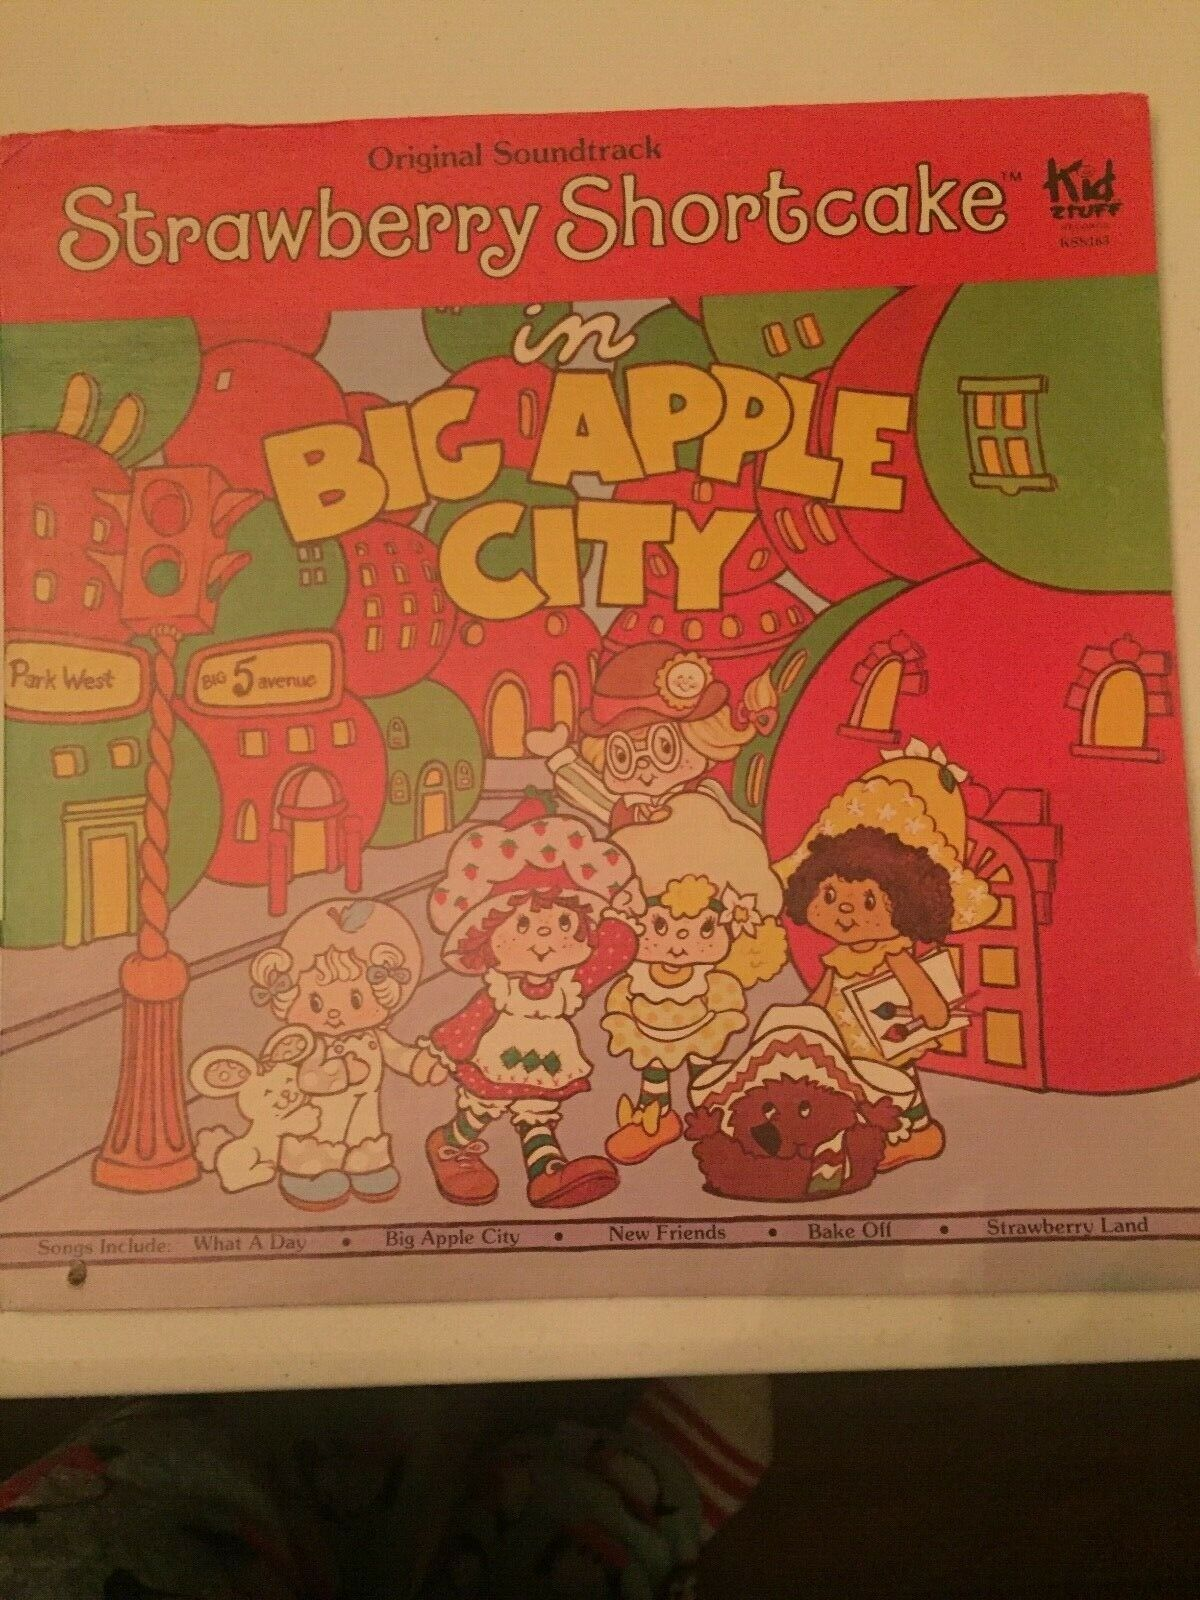 Primary image for Strawberry Shortcake Big Apple City Soundtrack LP Record Album Kid Stuff Vintage